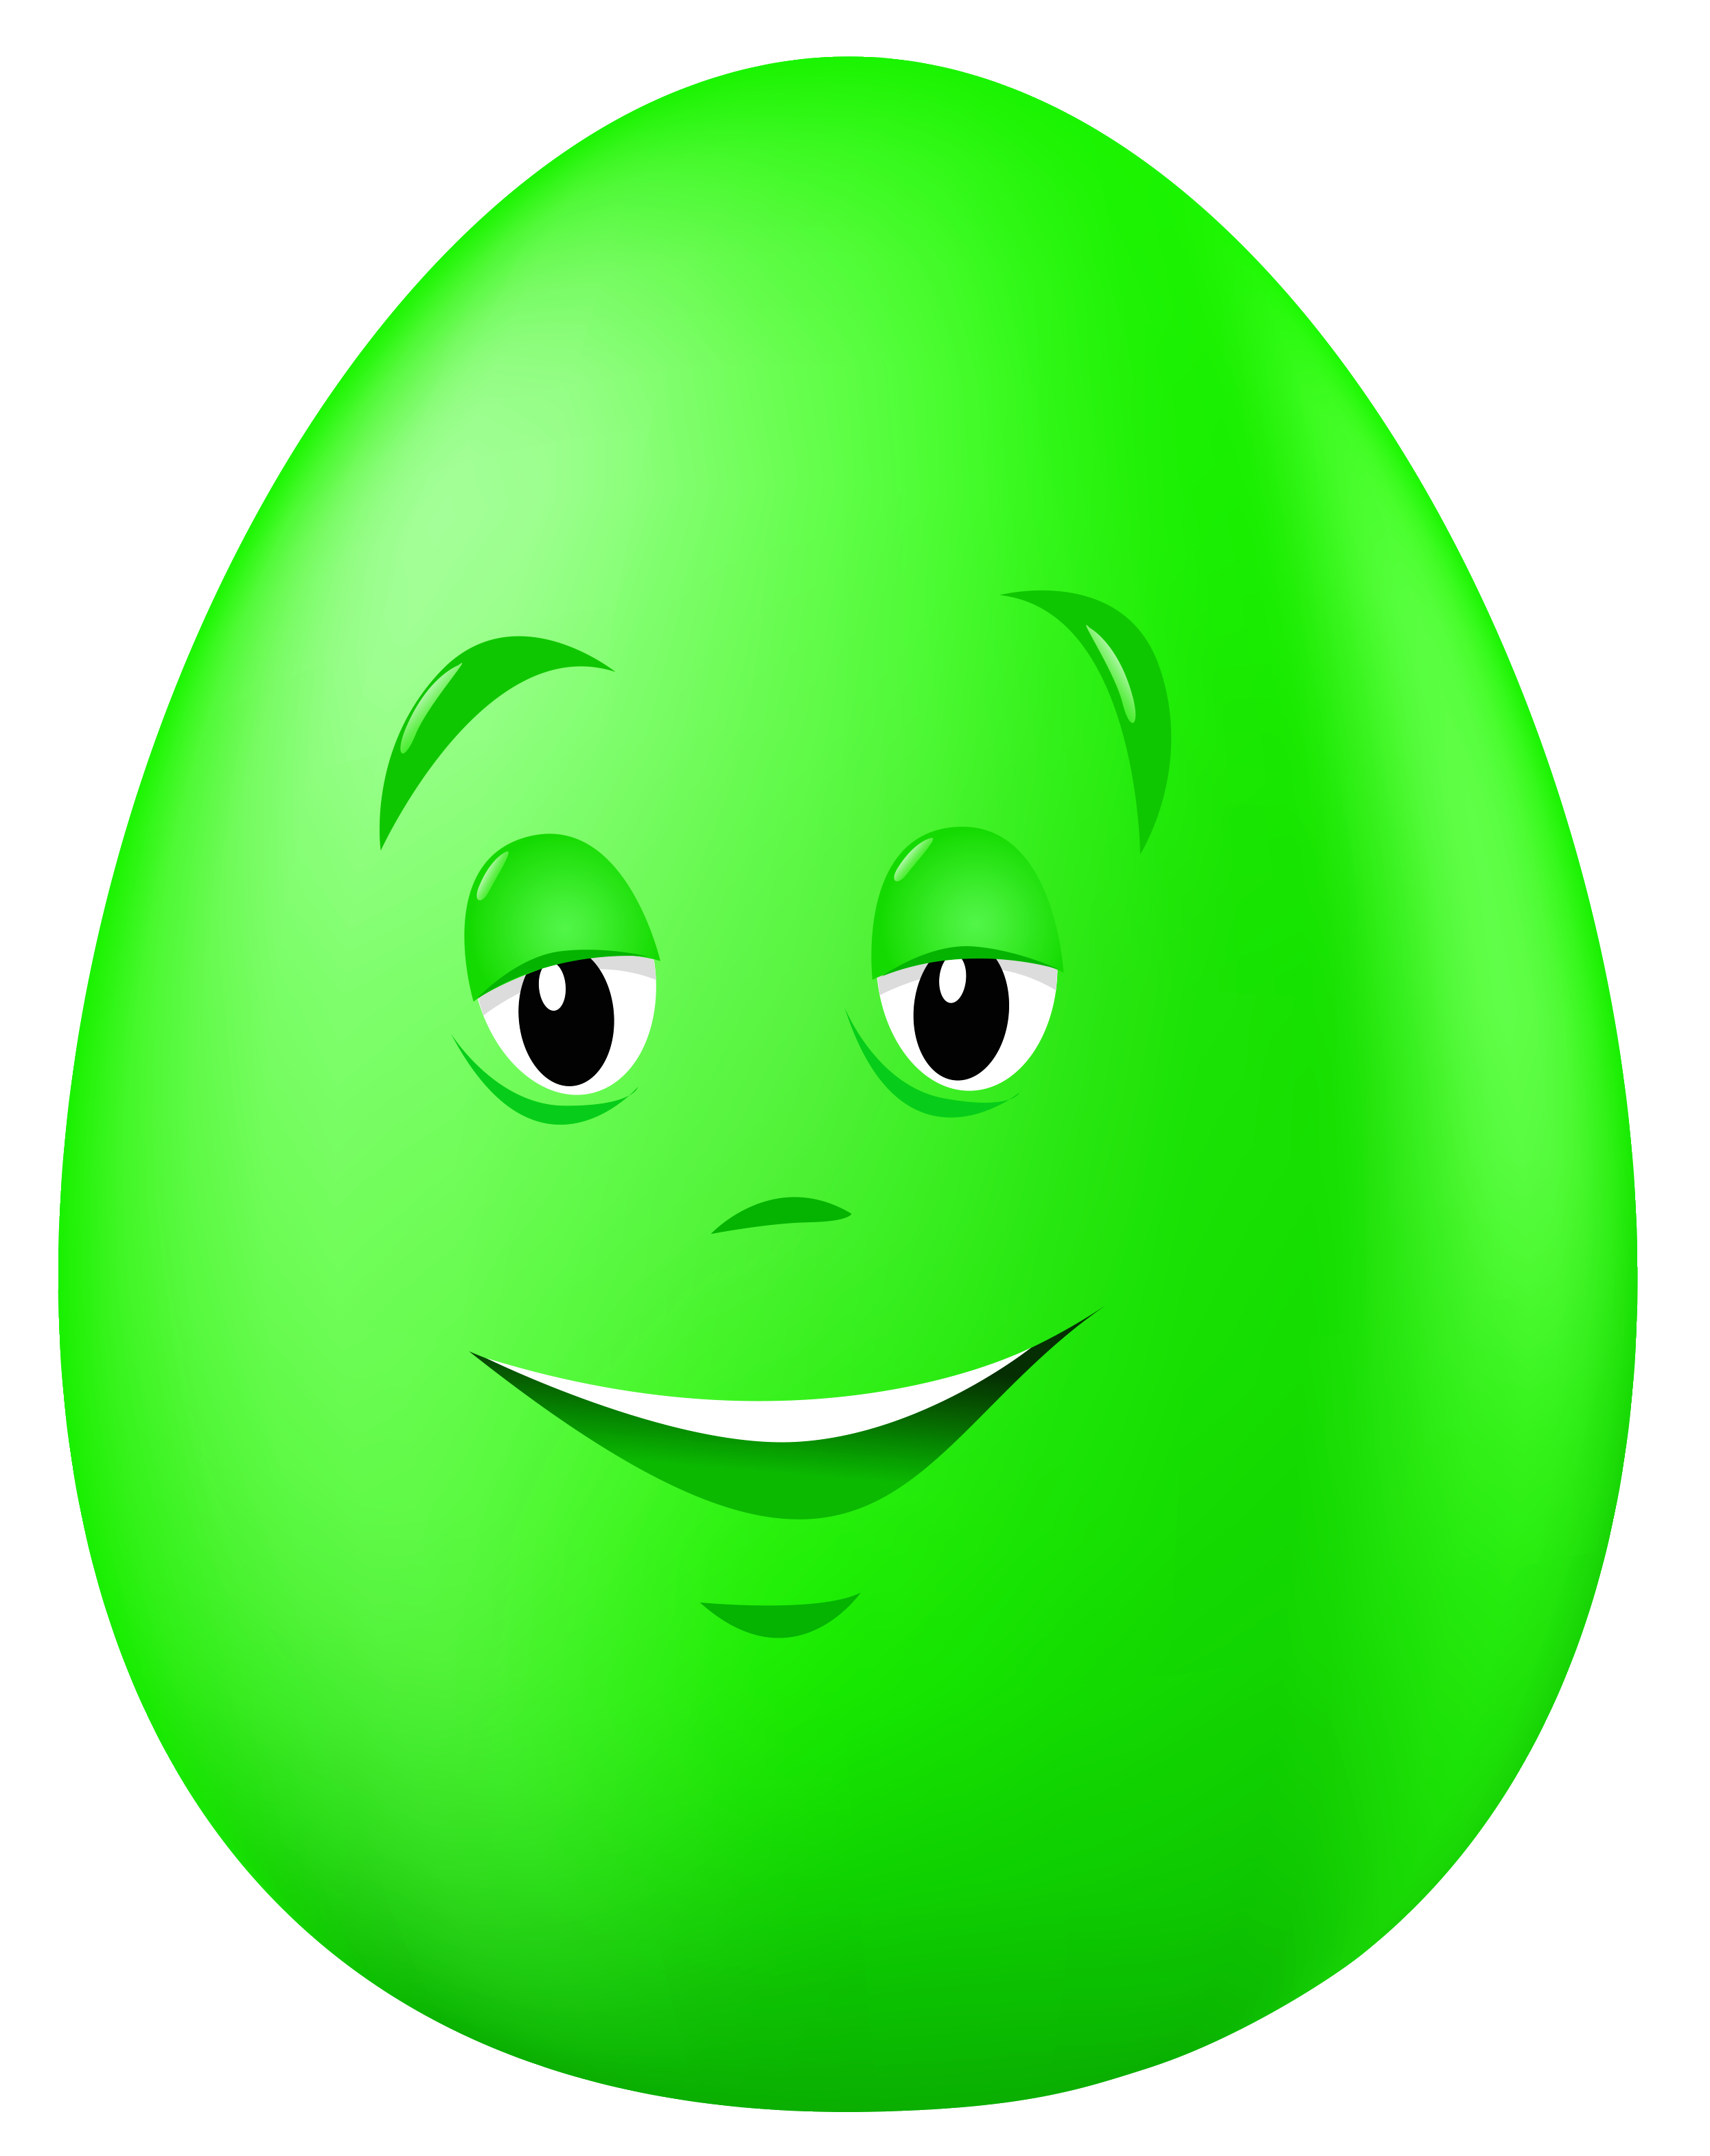 Green egg png. Transparent easter with face